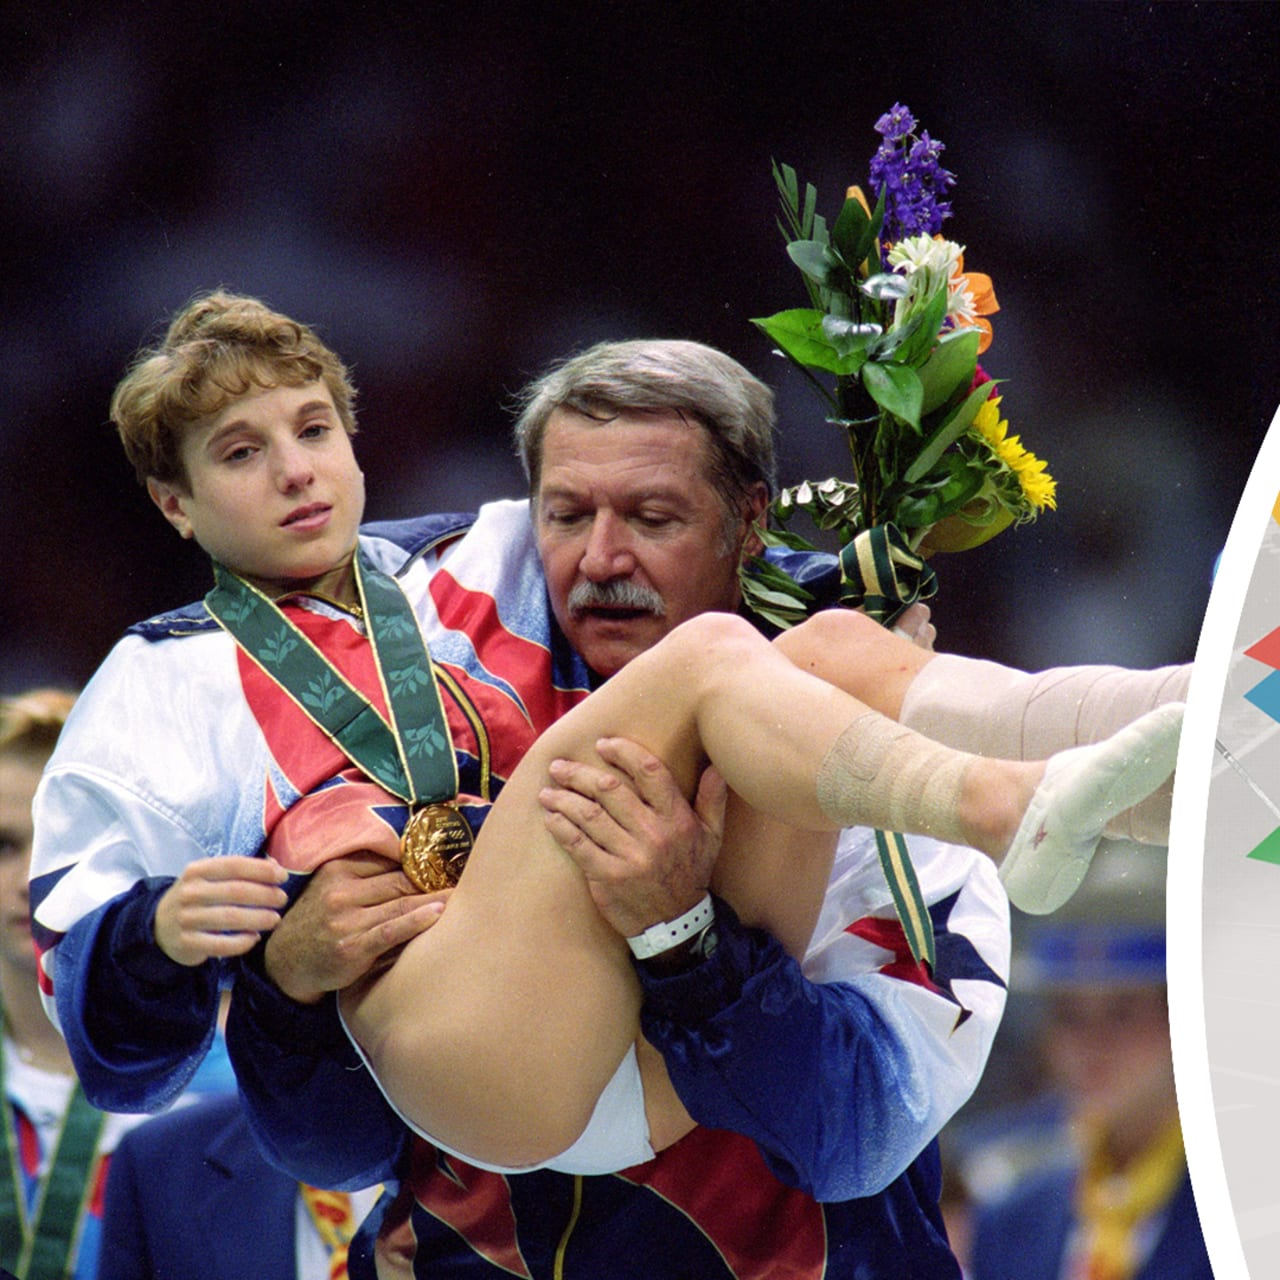 Kerri Strug shrugs off injury to clinch gold for USA: Iconic images in women sport- SportzPoint